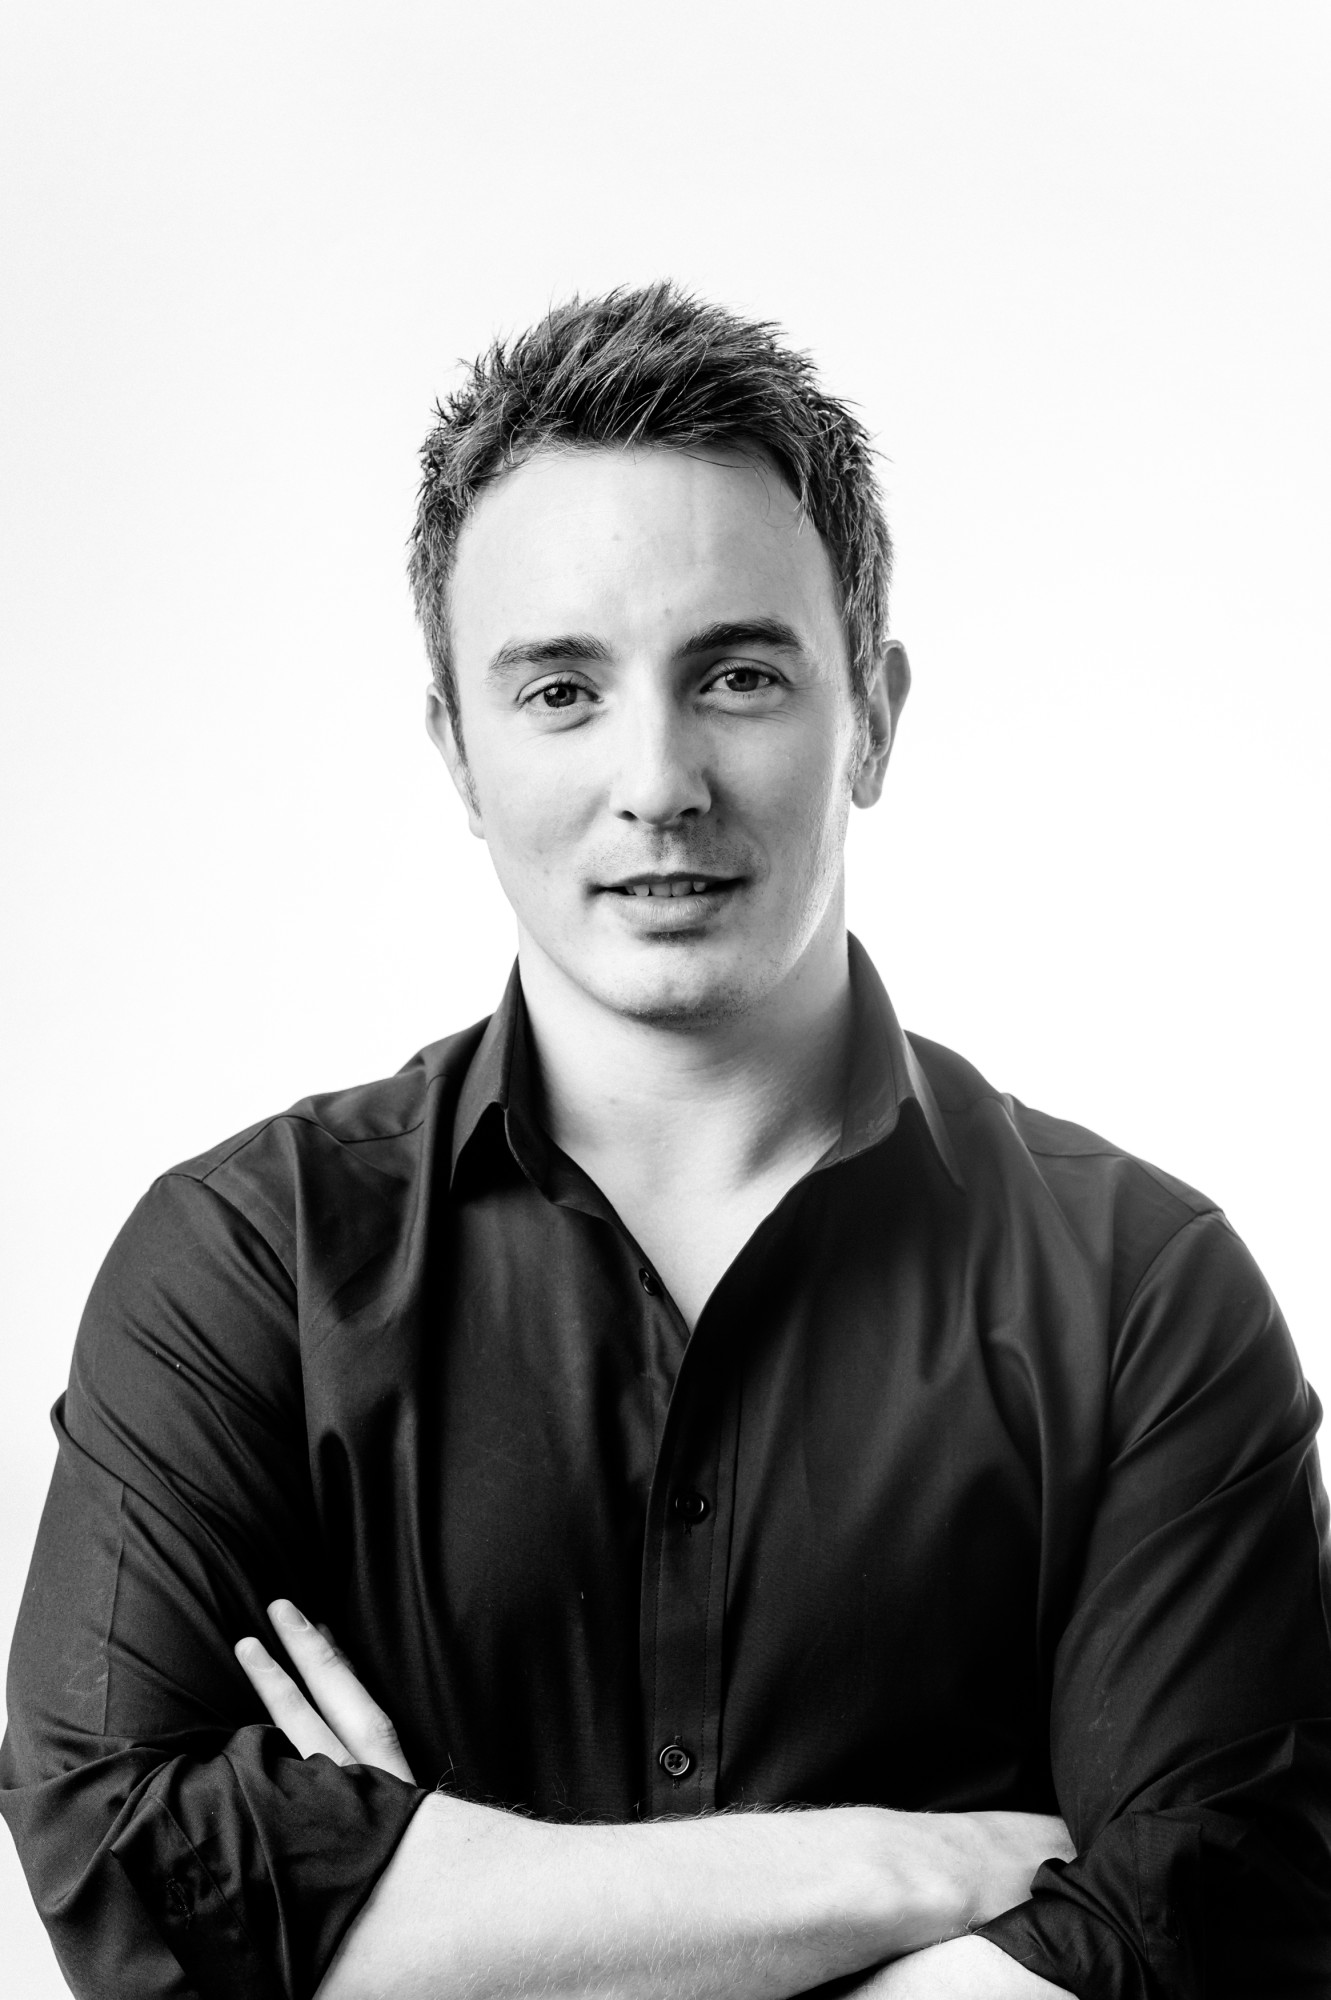 Tom Fielding Principal Osteopath at Hub Osteopathic Clinic Clapham